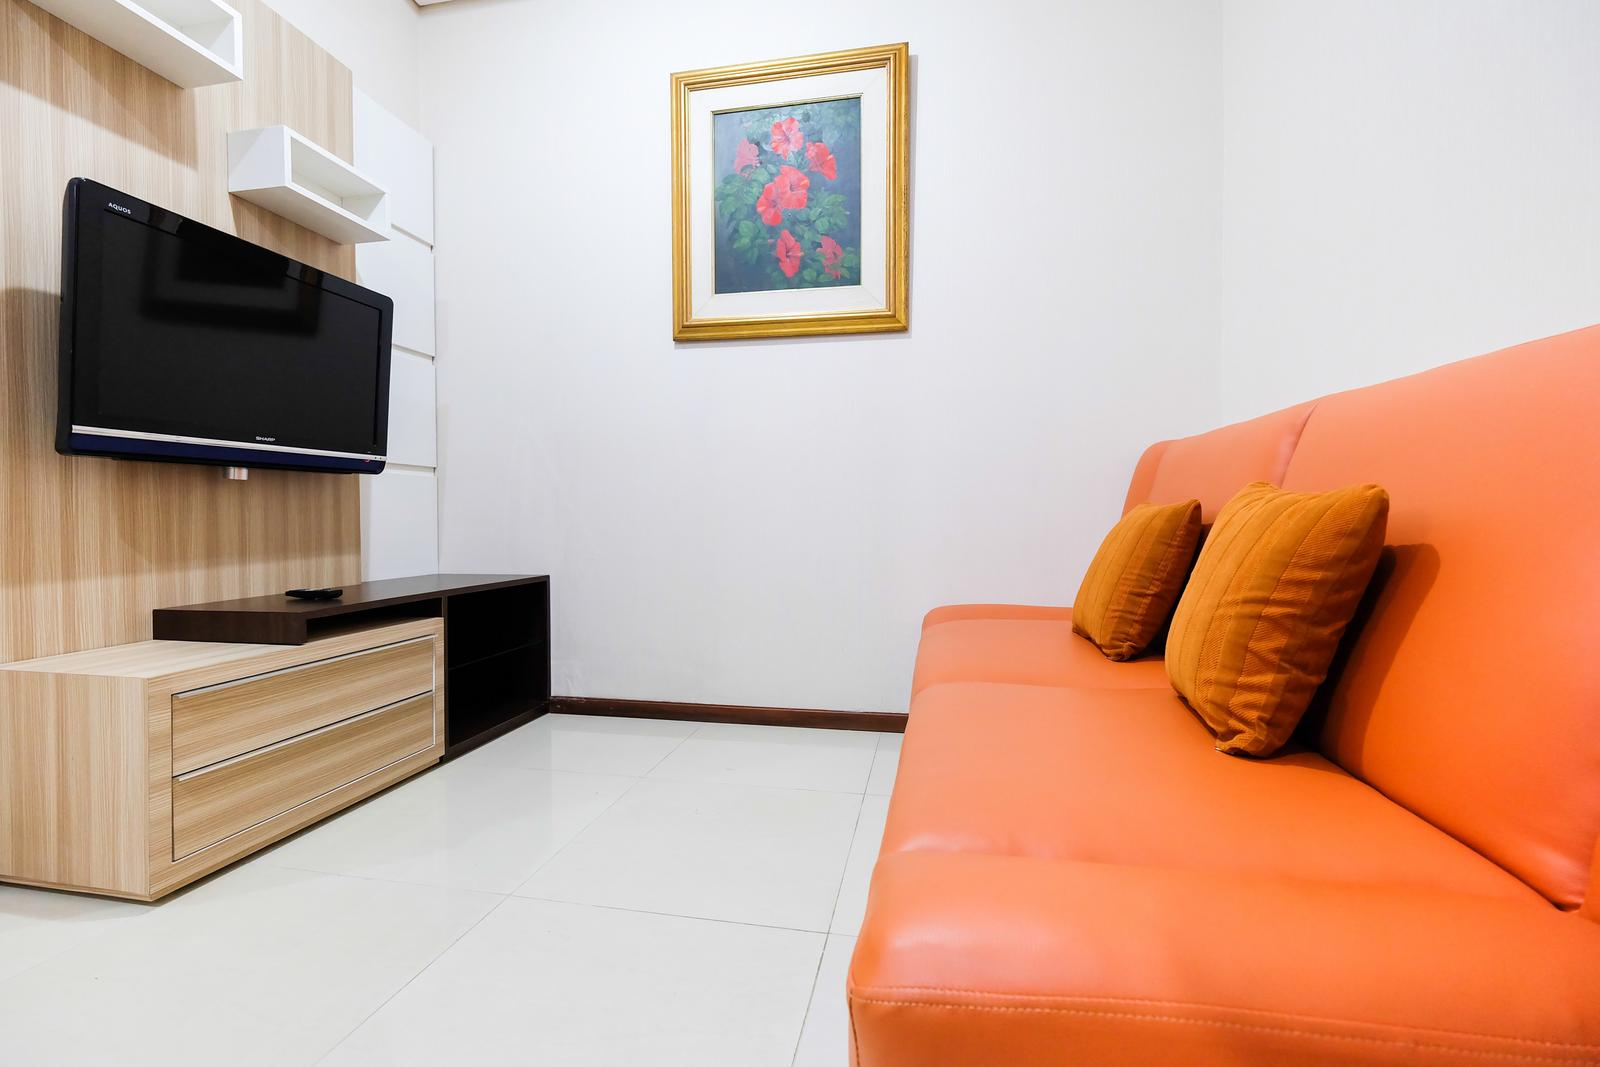 Thamrin Residence - Homey 1 BR Apartment Thamrin Residence By Travelio